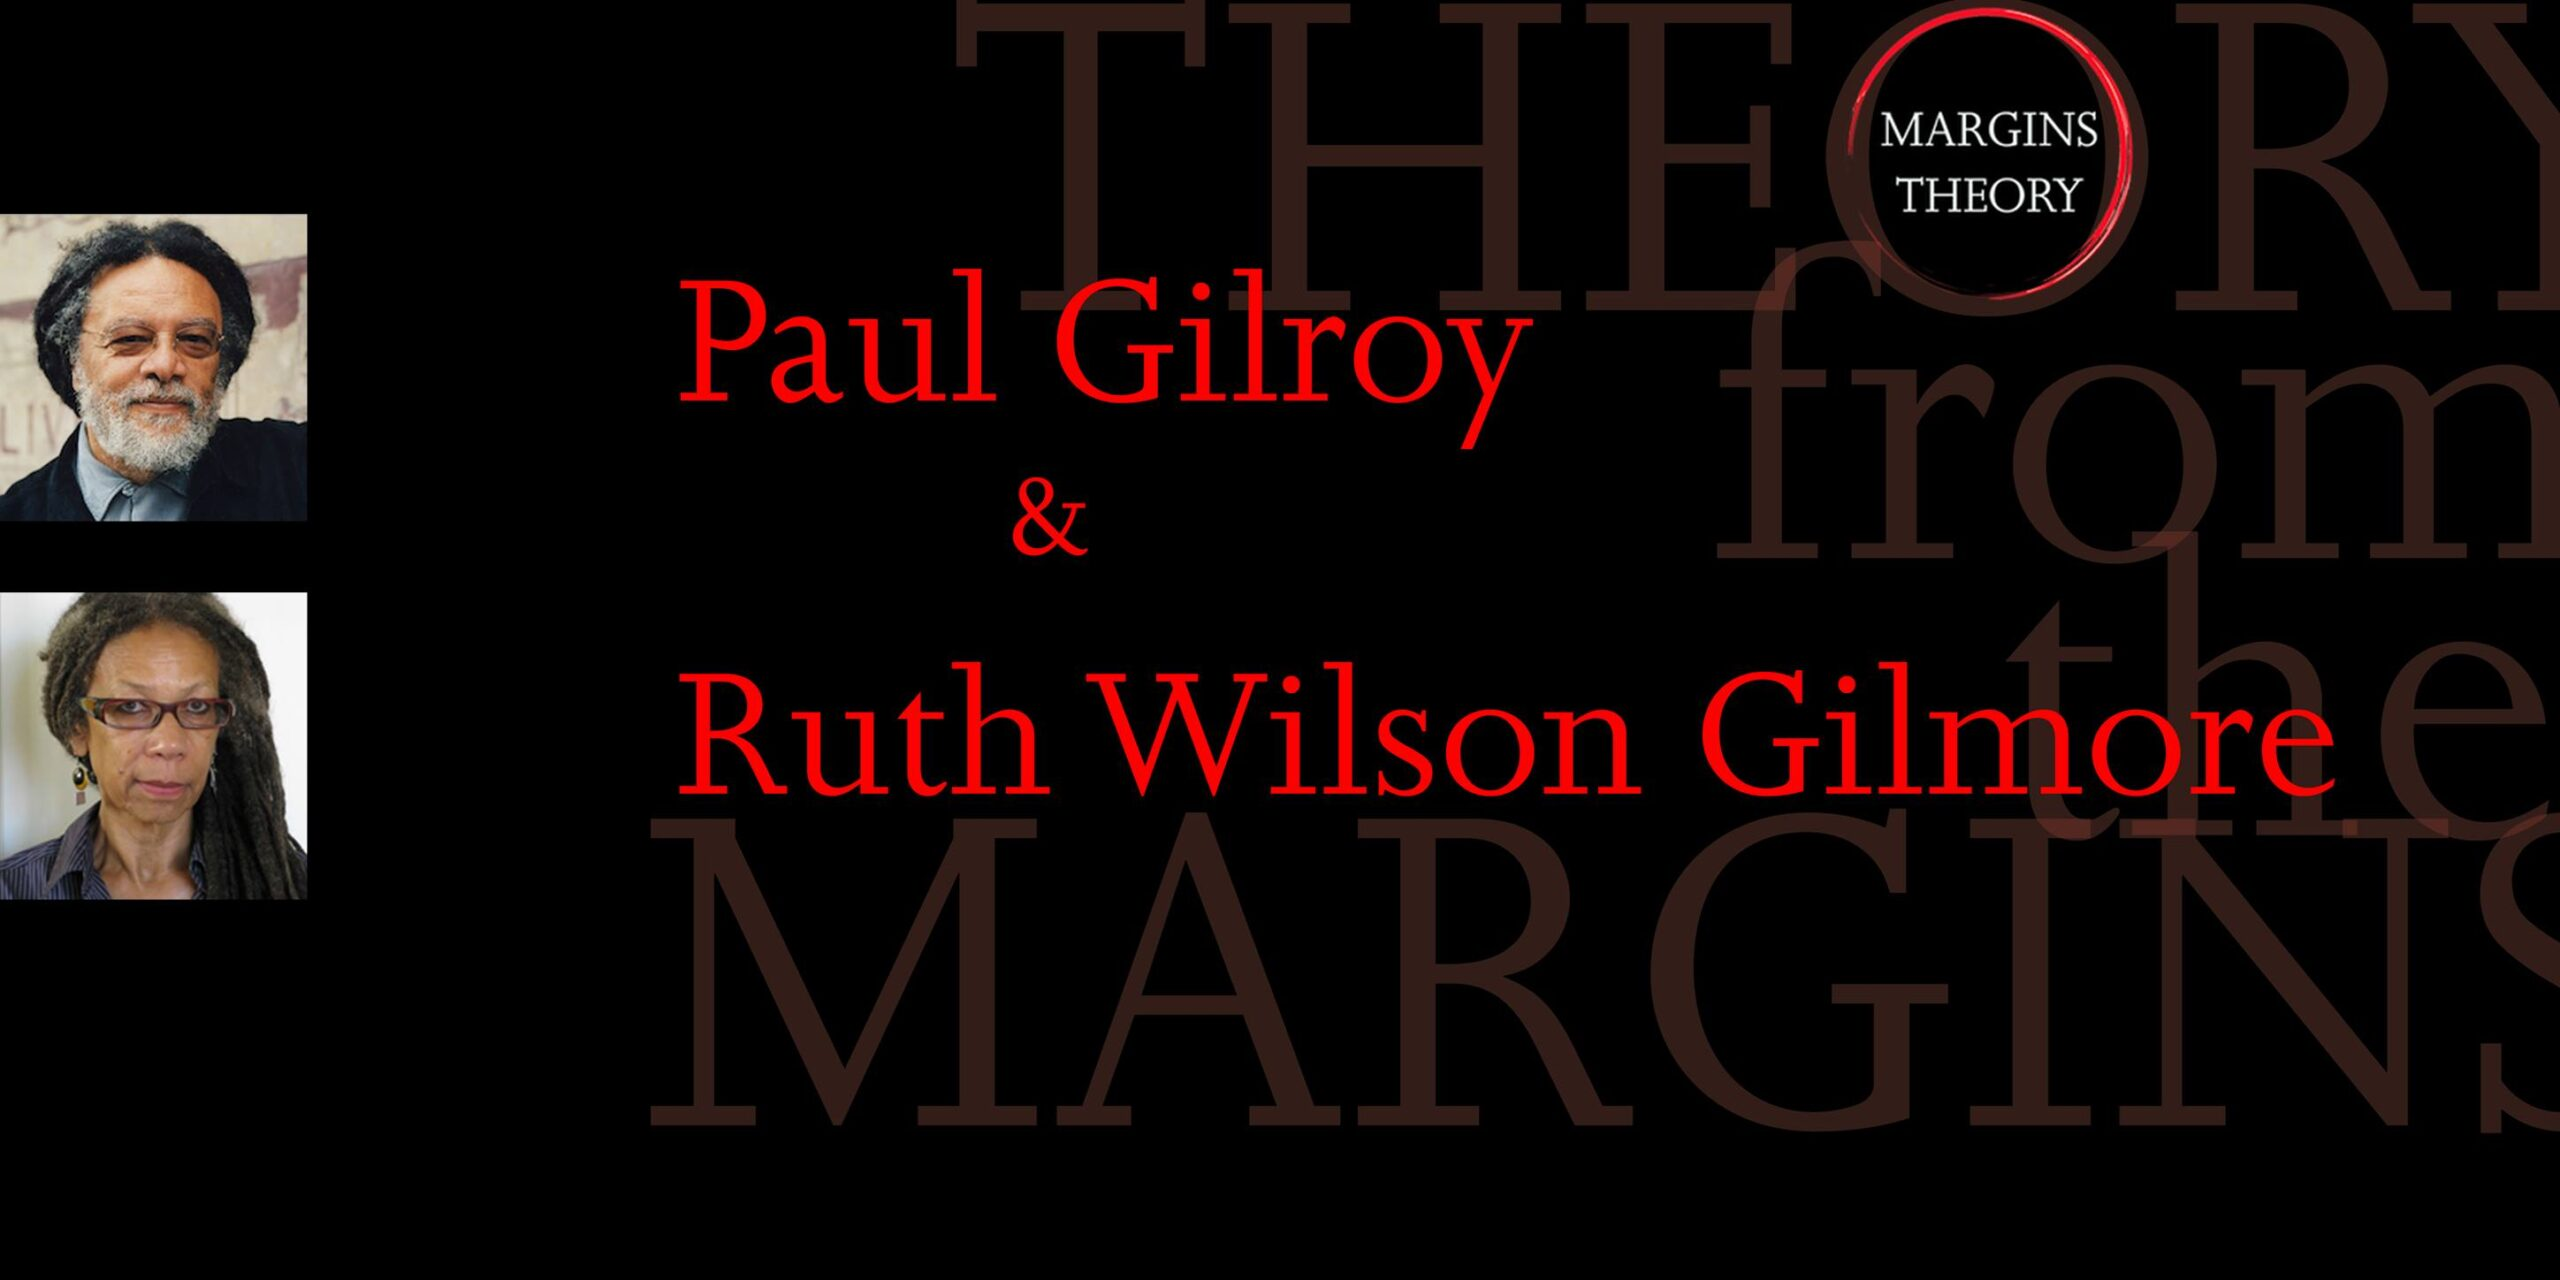 Paul Gilroy and Ruth Wilson Gilmore: Stuart Hall's Selected Writings on Race and Difference